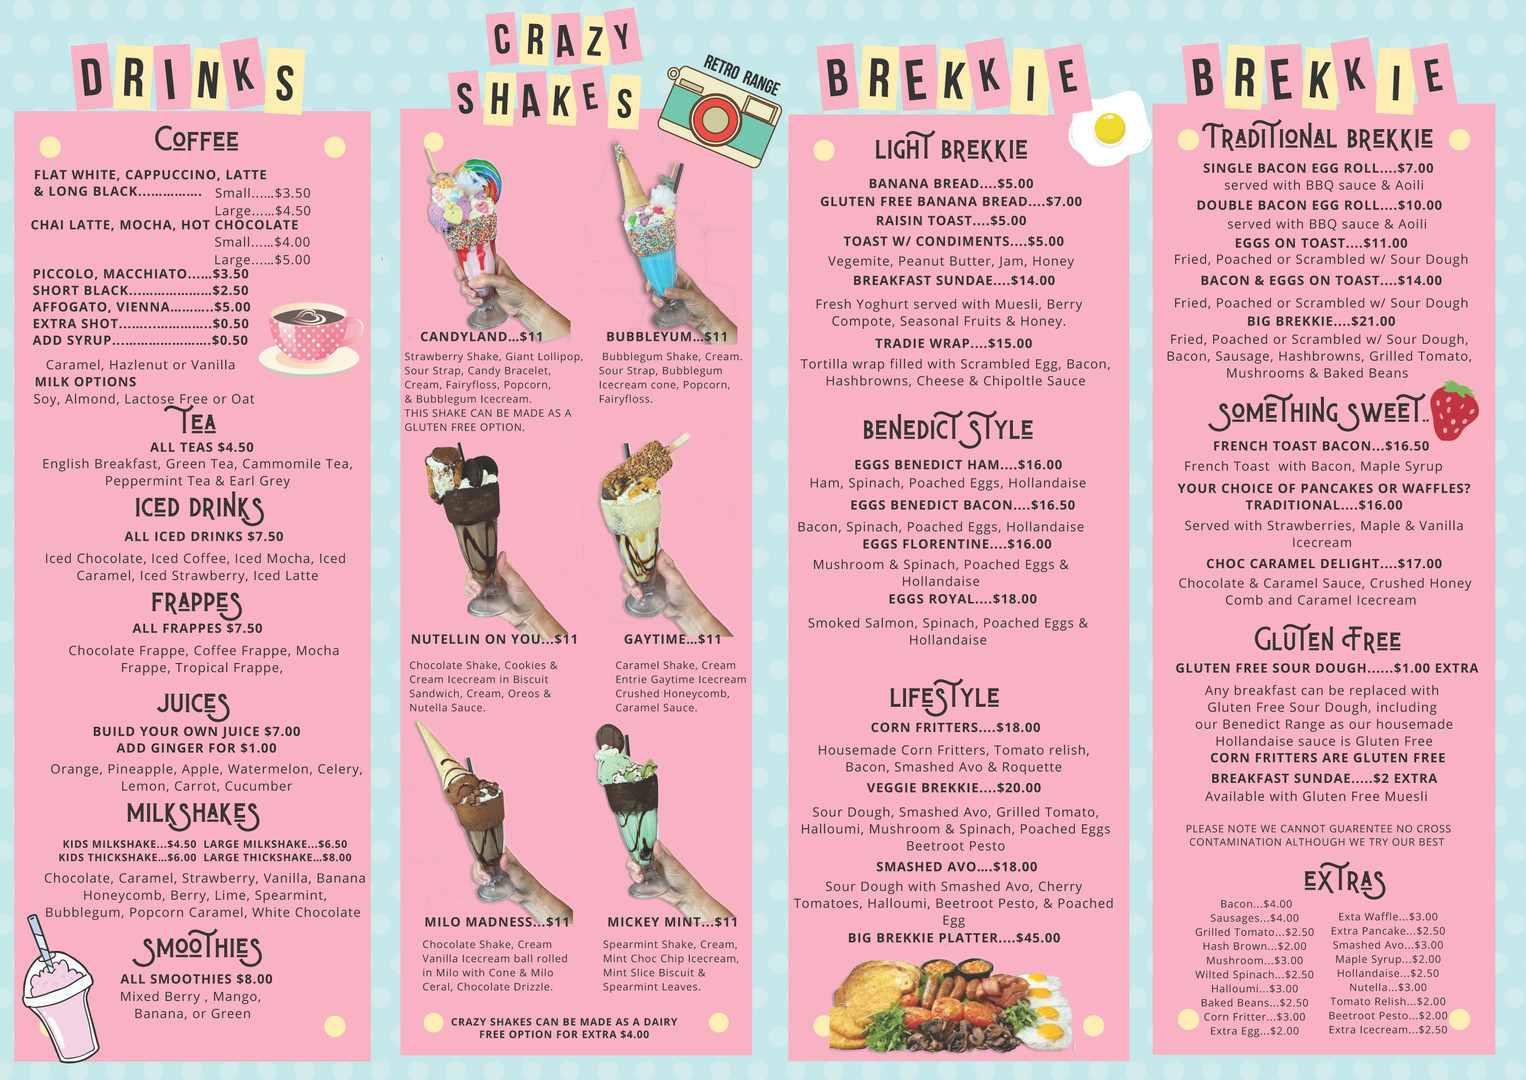 Drinks, Crazy Shakes and Breakfast Menu